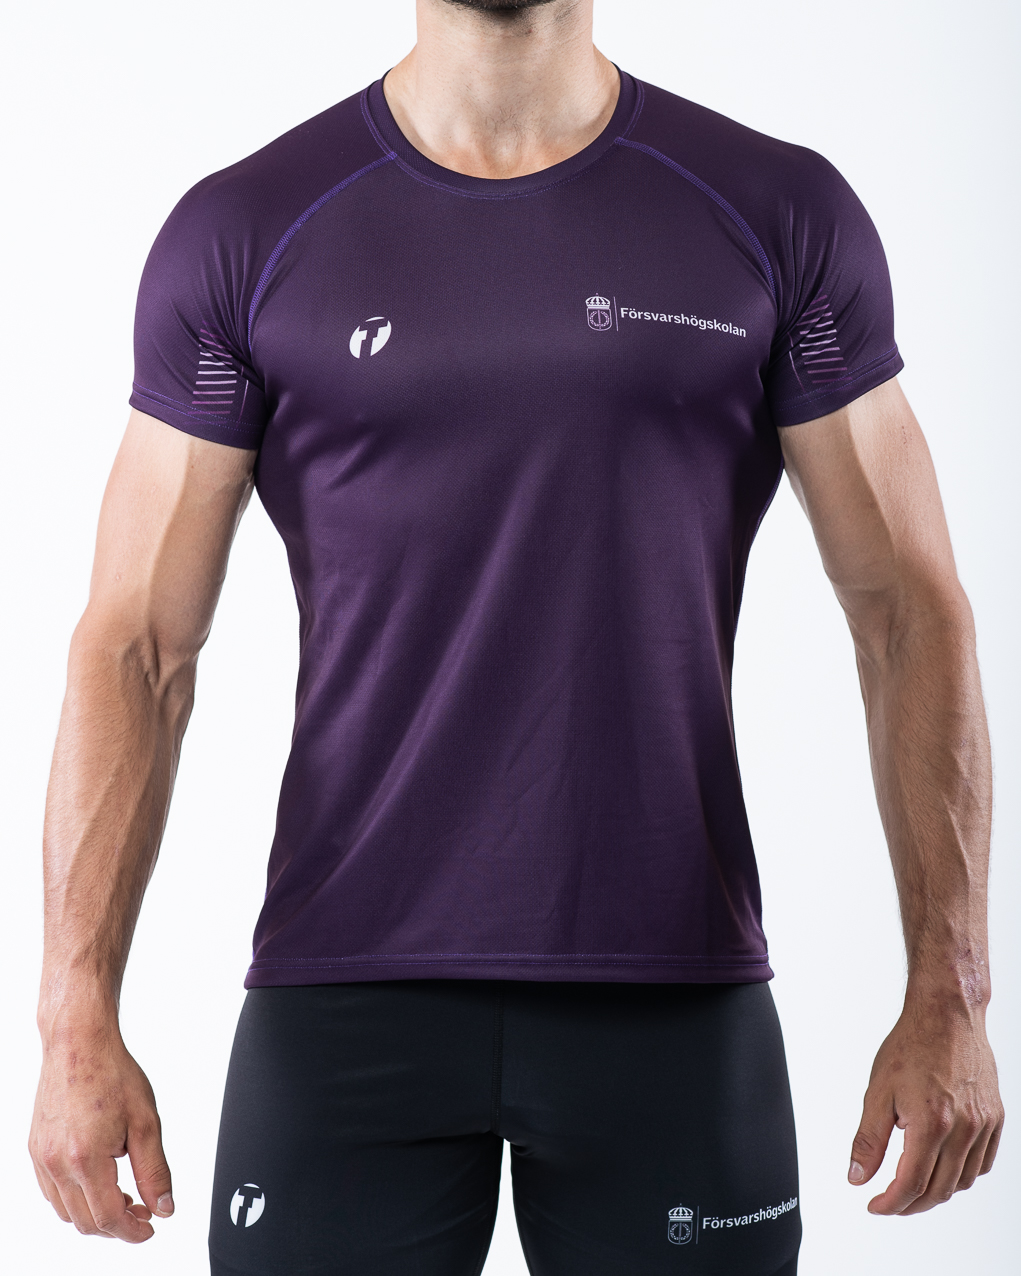 Men's t-shirt, purple, front